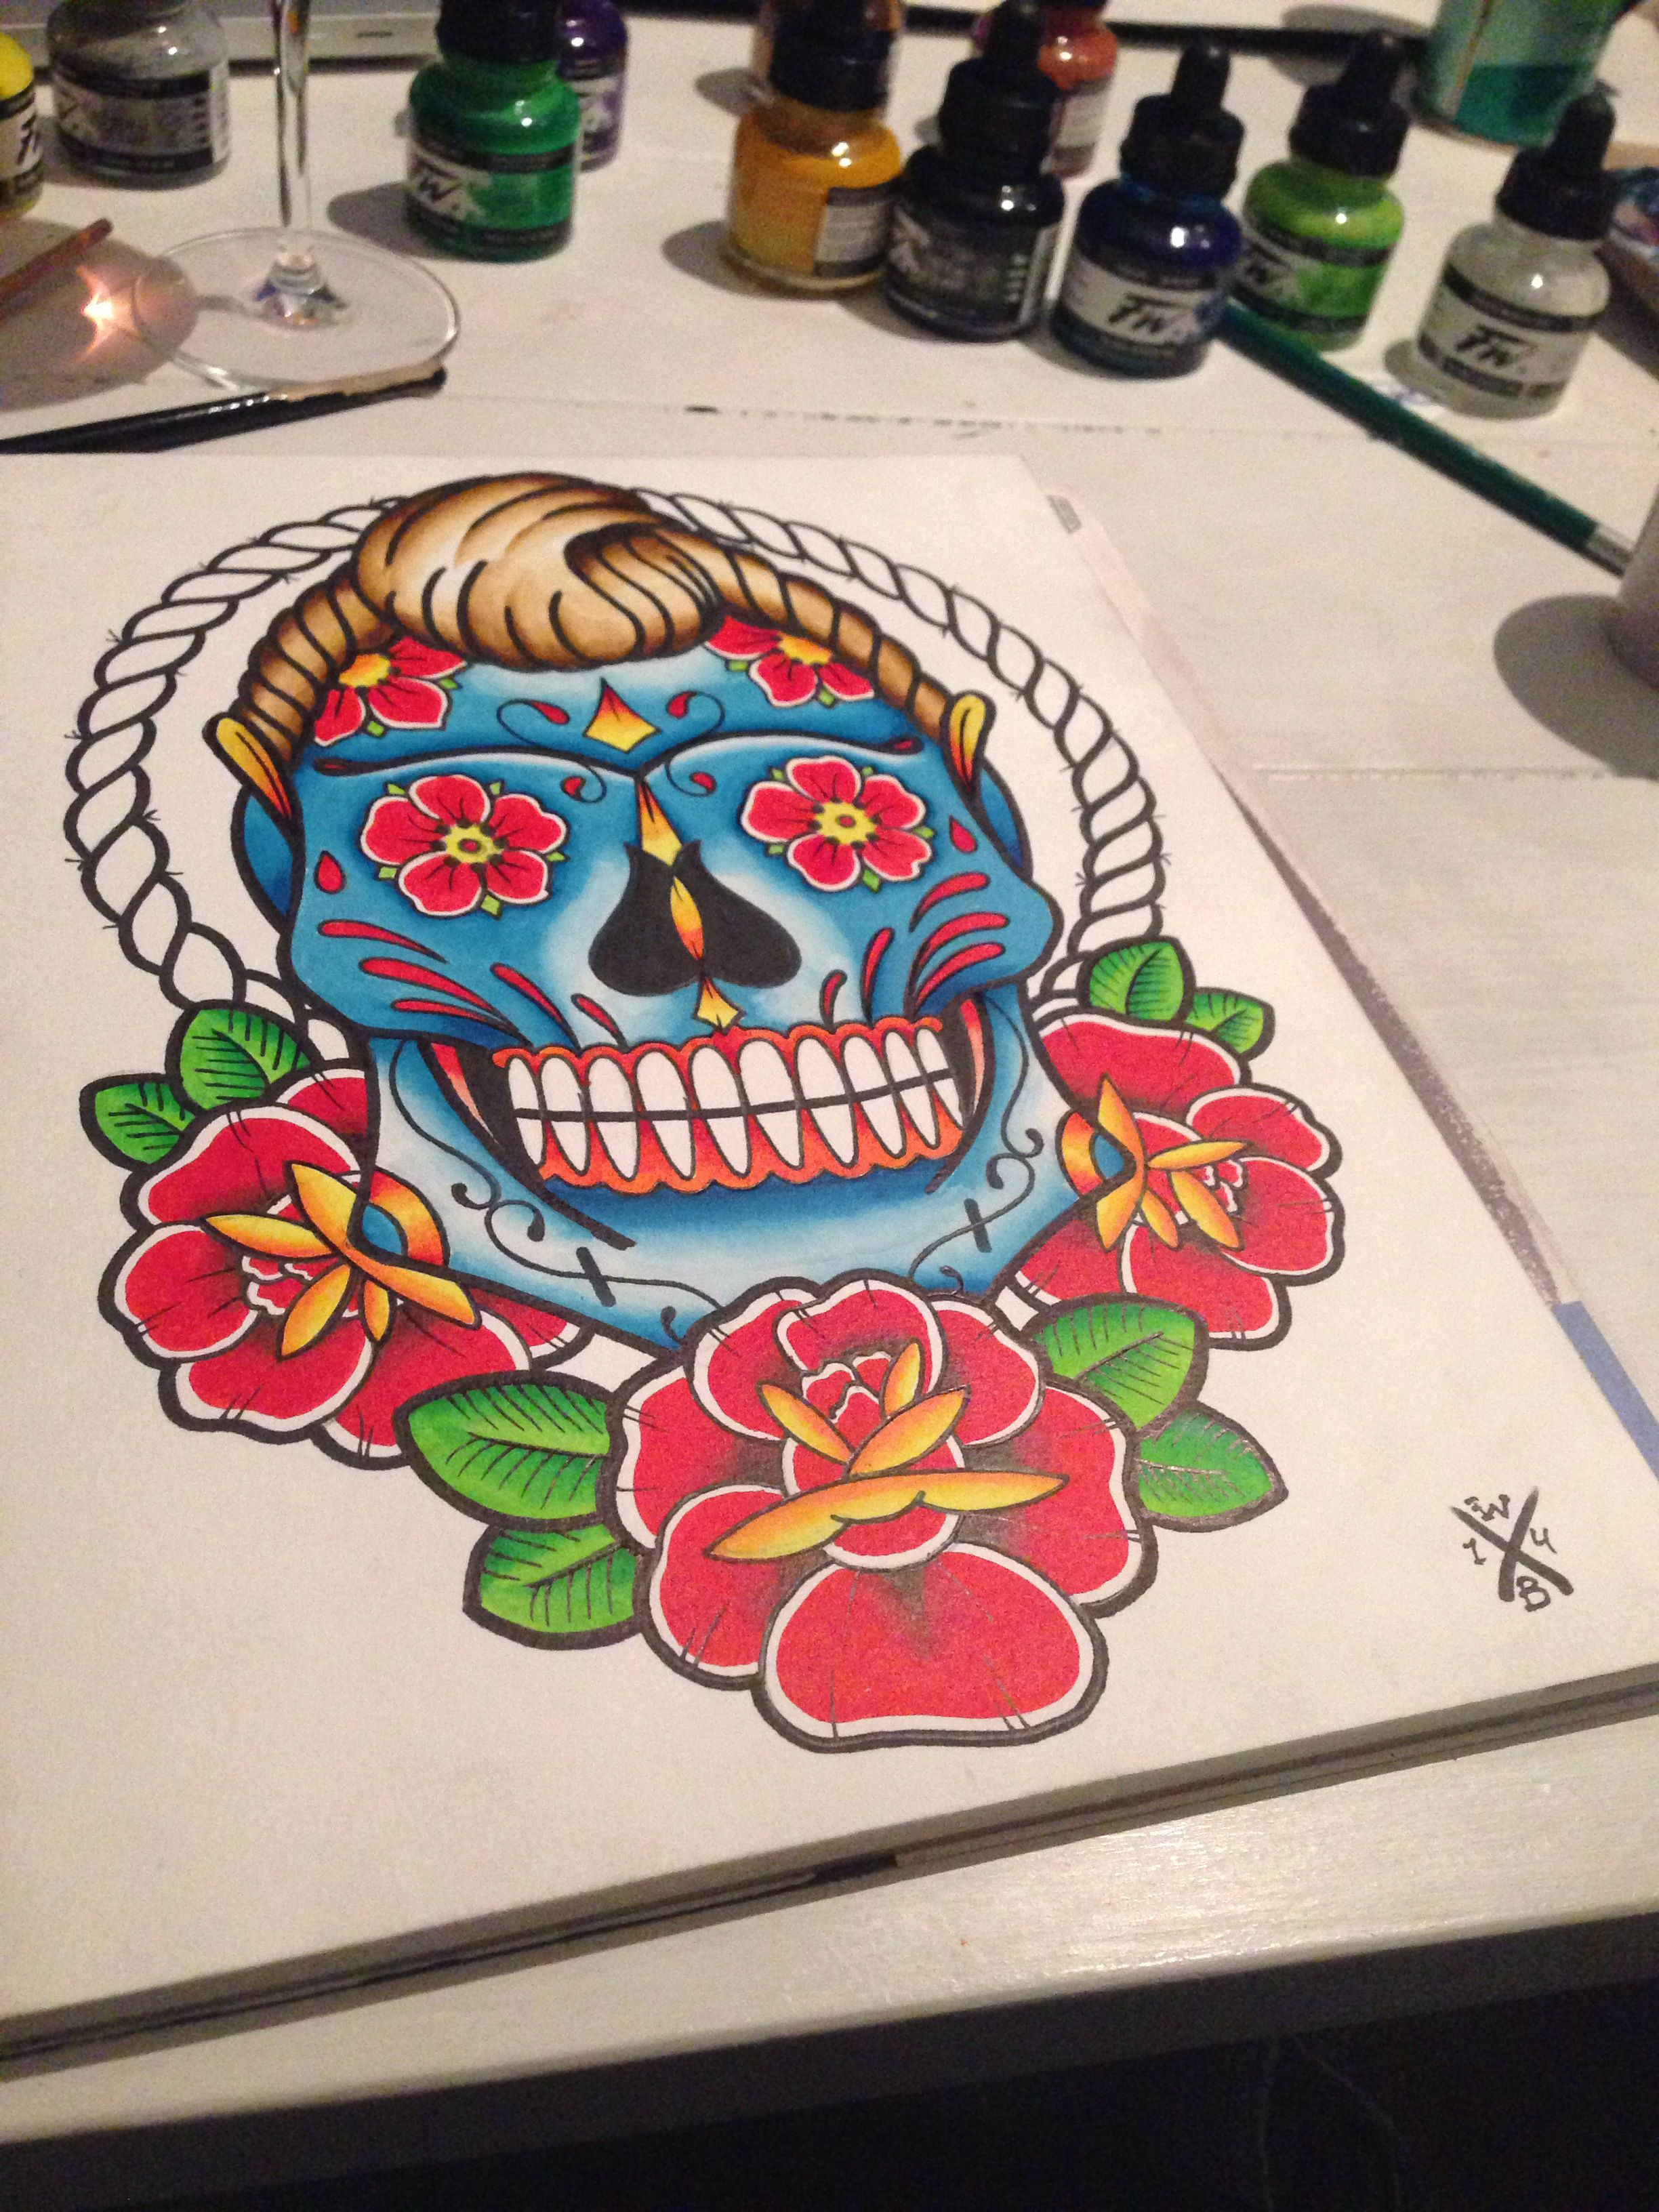 By Wesley Bekkers #art #apprentice #apprenticeart #skull #sketch #scumbag #scumbekkers #draw #design #flash #flower #flashart #barber #bekkers #barberflash #paint #print #ink #sugar #diaz #muertes #tattoo #tattooart #tattoolife #tattoolove #tattooflash #tattoosofig #traditional #traditionalflash #traditionaltattoo #traditionaltattooflash